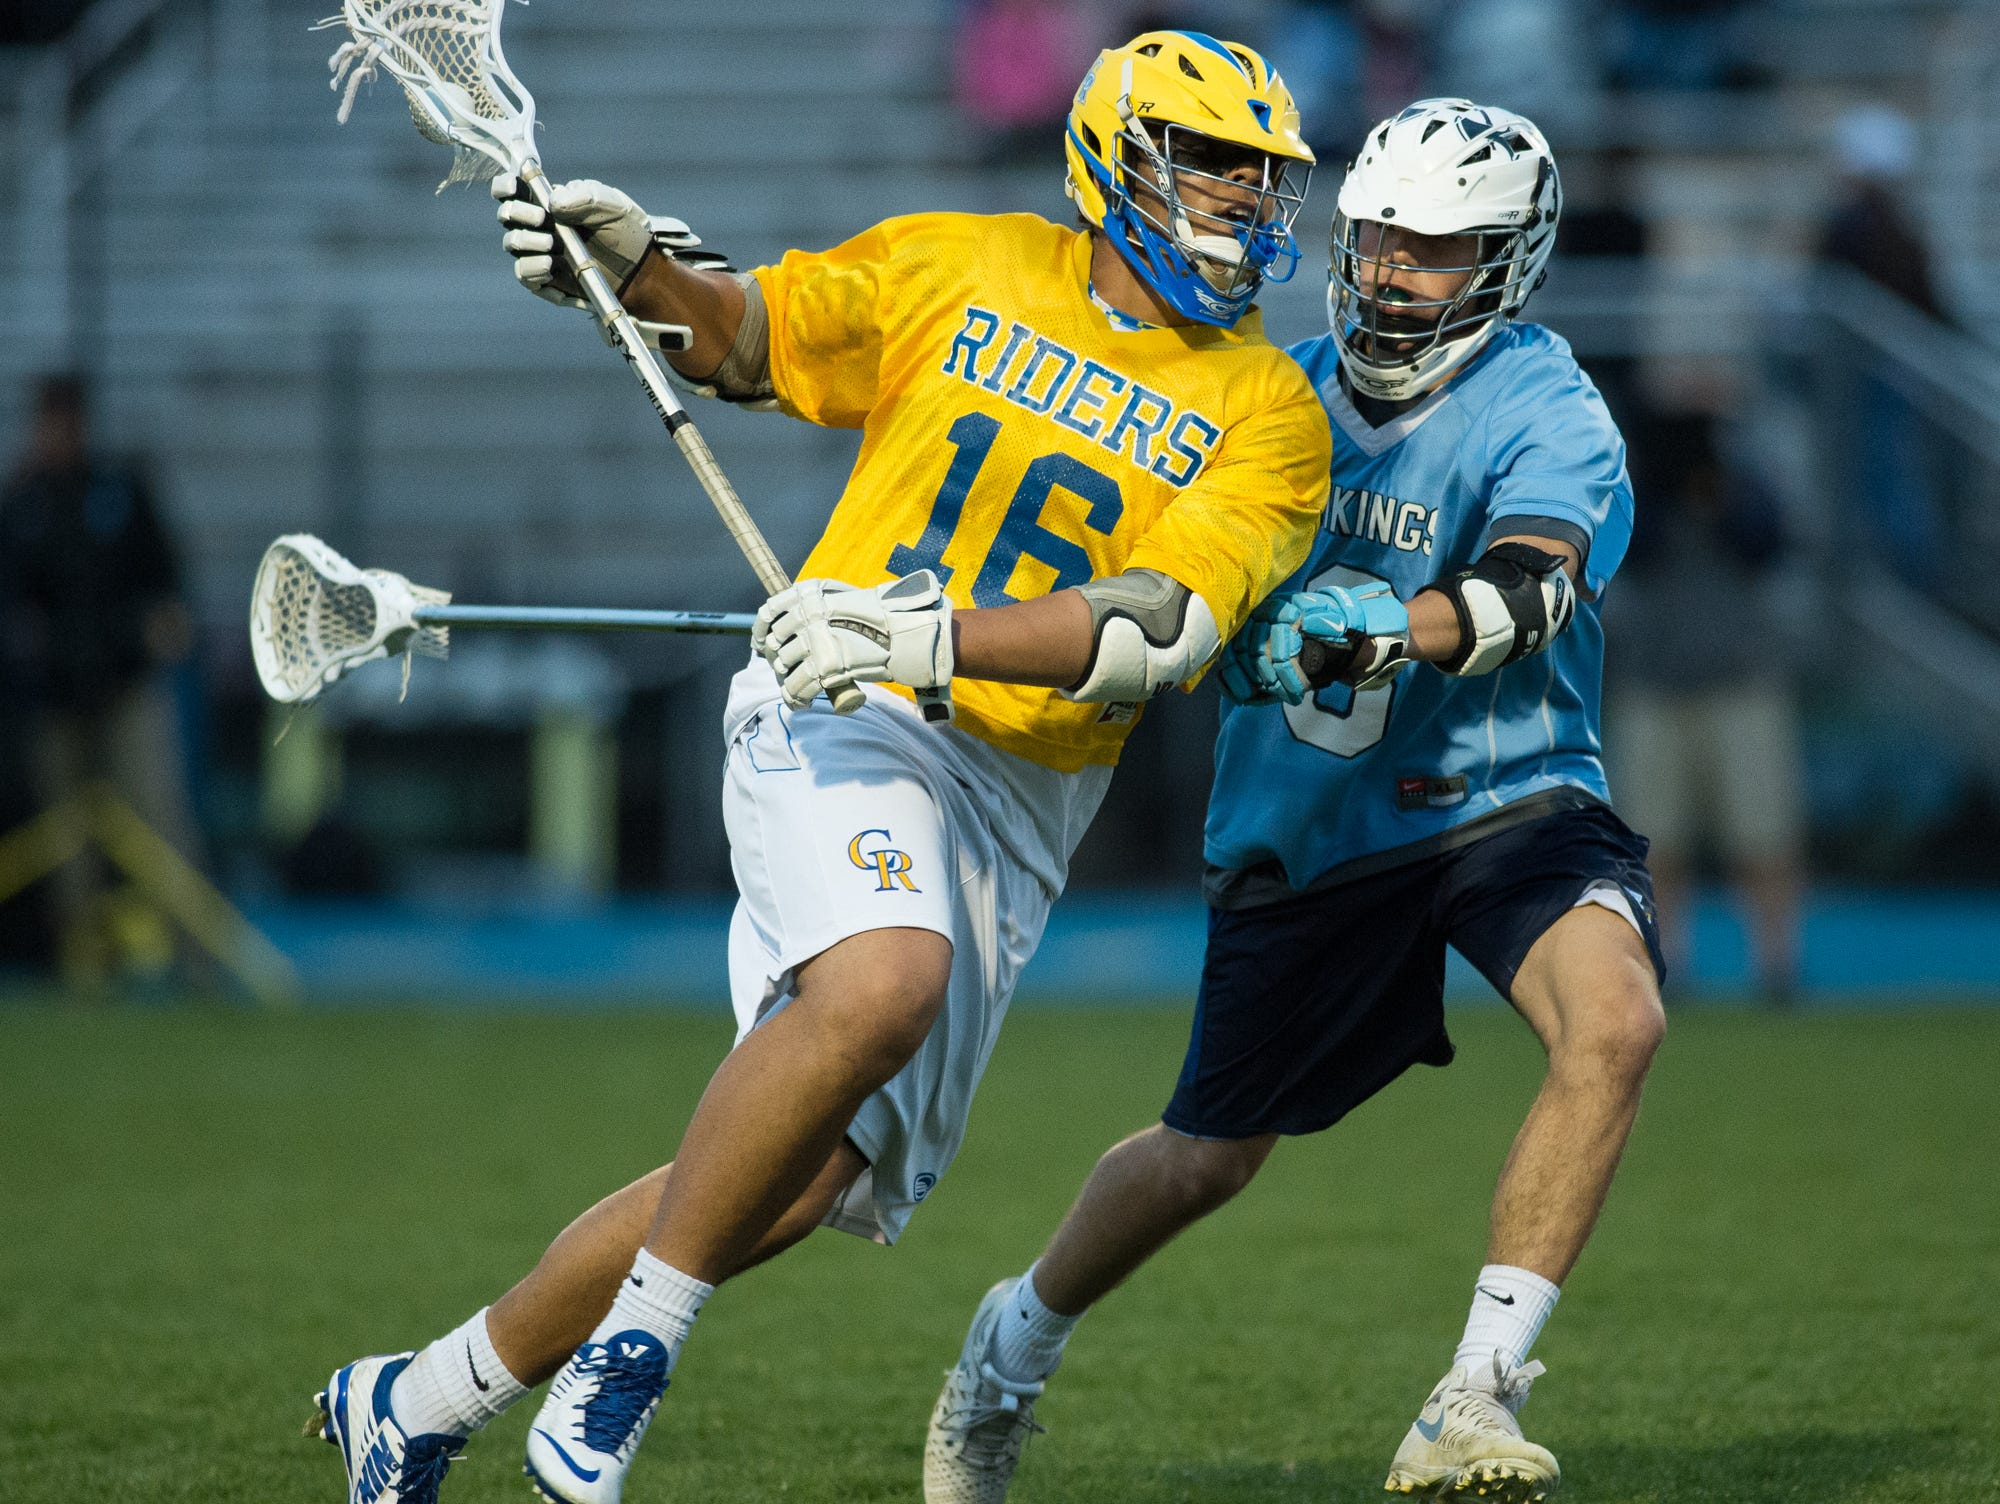 Caesar Rodney's Demetrius Stevenson (16) runs down the field while being defended by Cape Henlopen's Dillon Mocci (3).